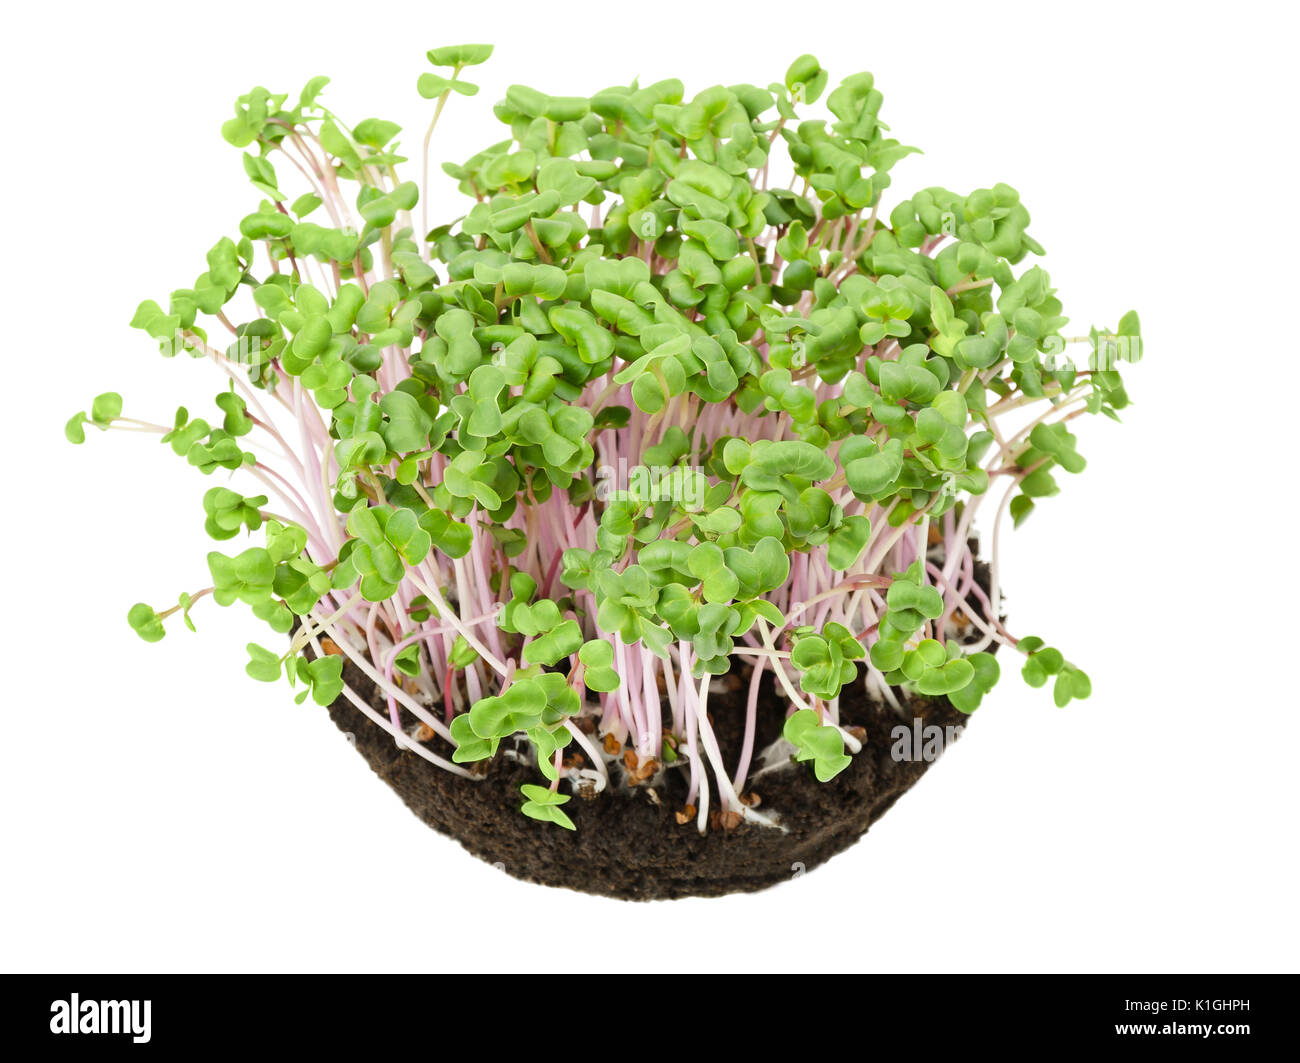 China Rose radish seedlings in potting compost from above. Sprouts, vegetable, microgreen. Chinese winter radish with smooth rose colored skin. - Stock Image